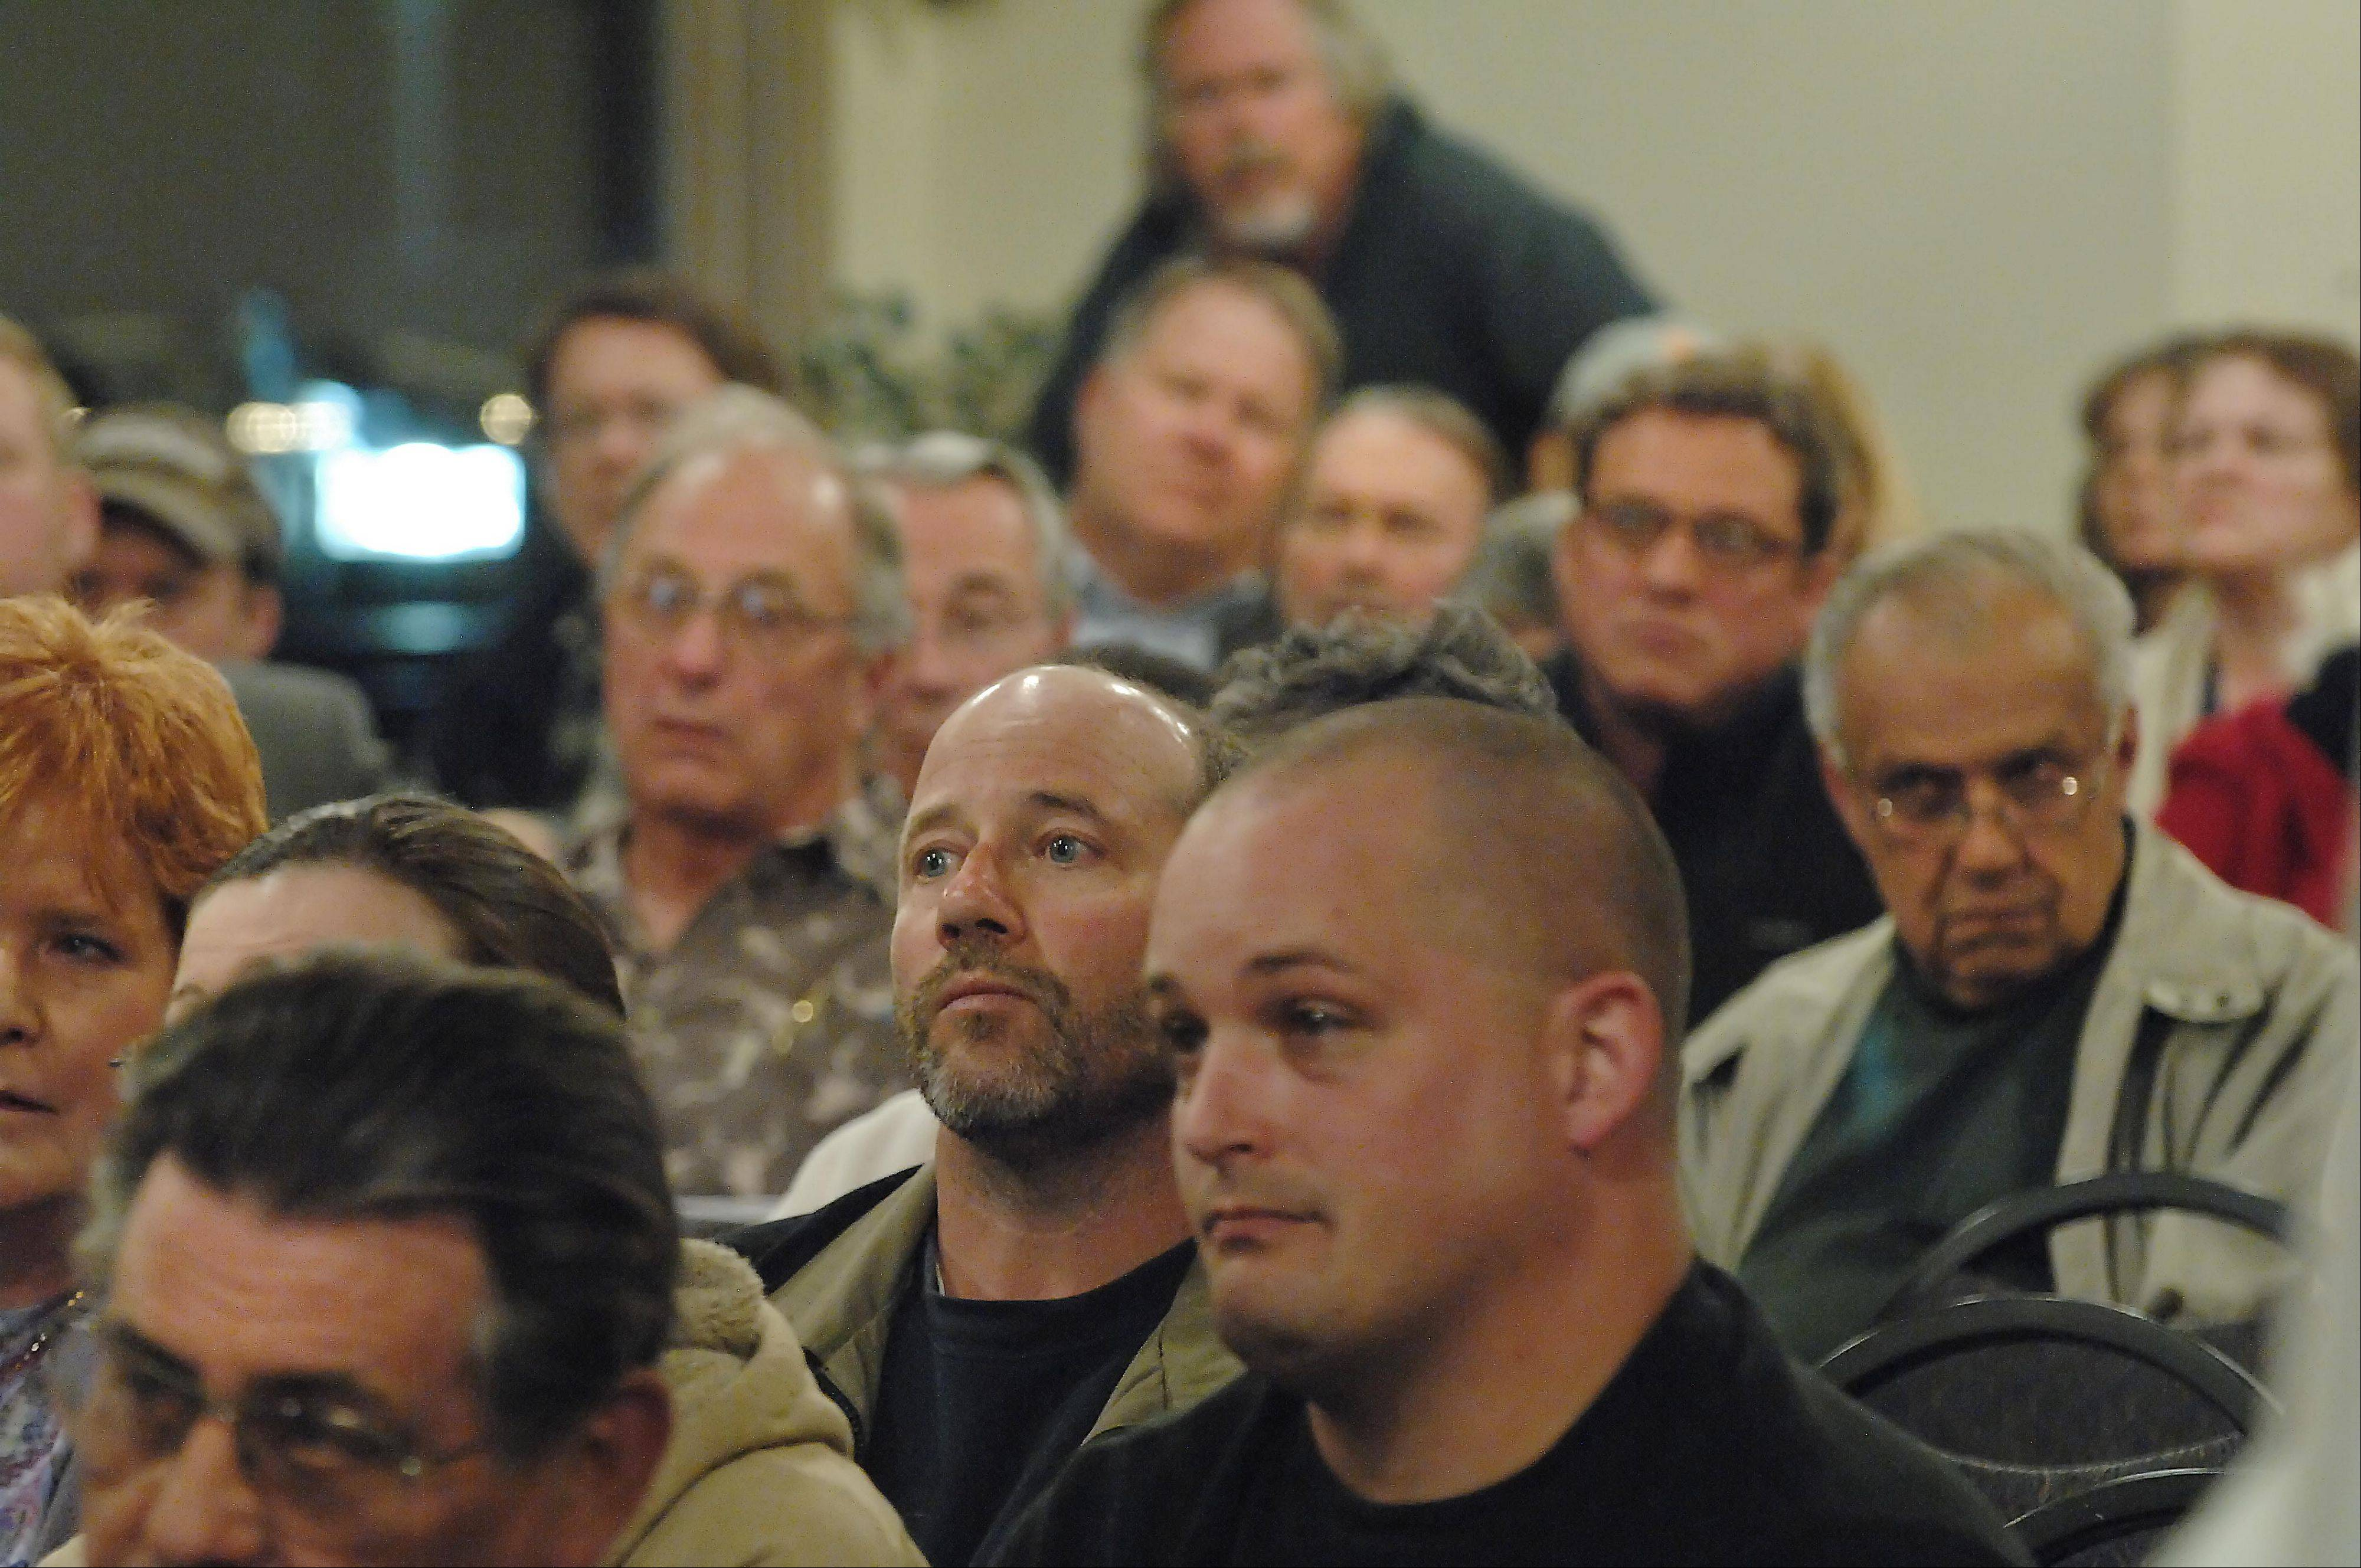 Citizens listen with concern Tuesday night at the Dundee Township annual meeting. A vote was taken to continue deer culling in Dundee Township Open Spaces.